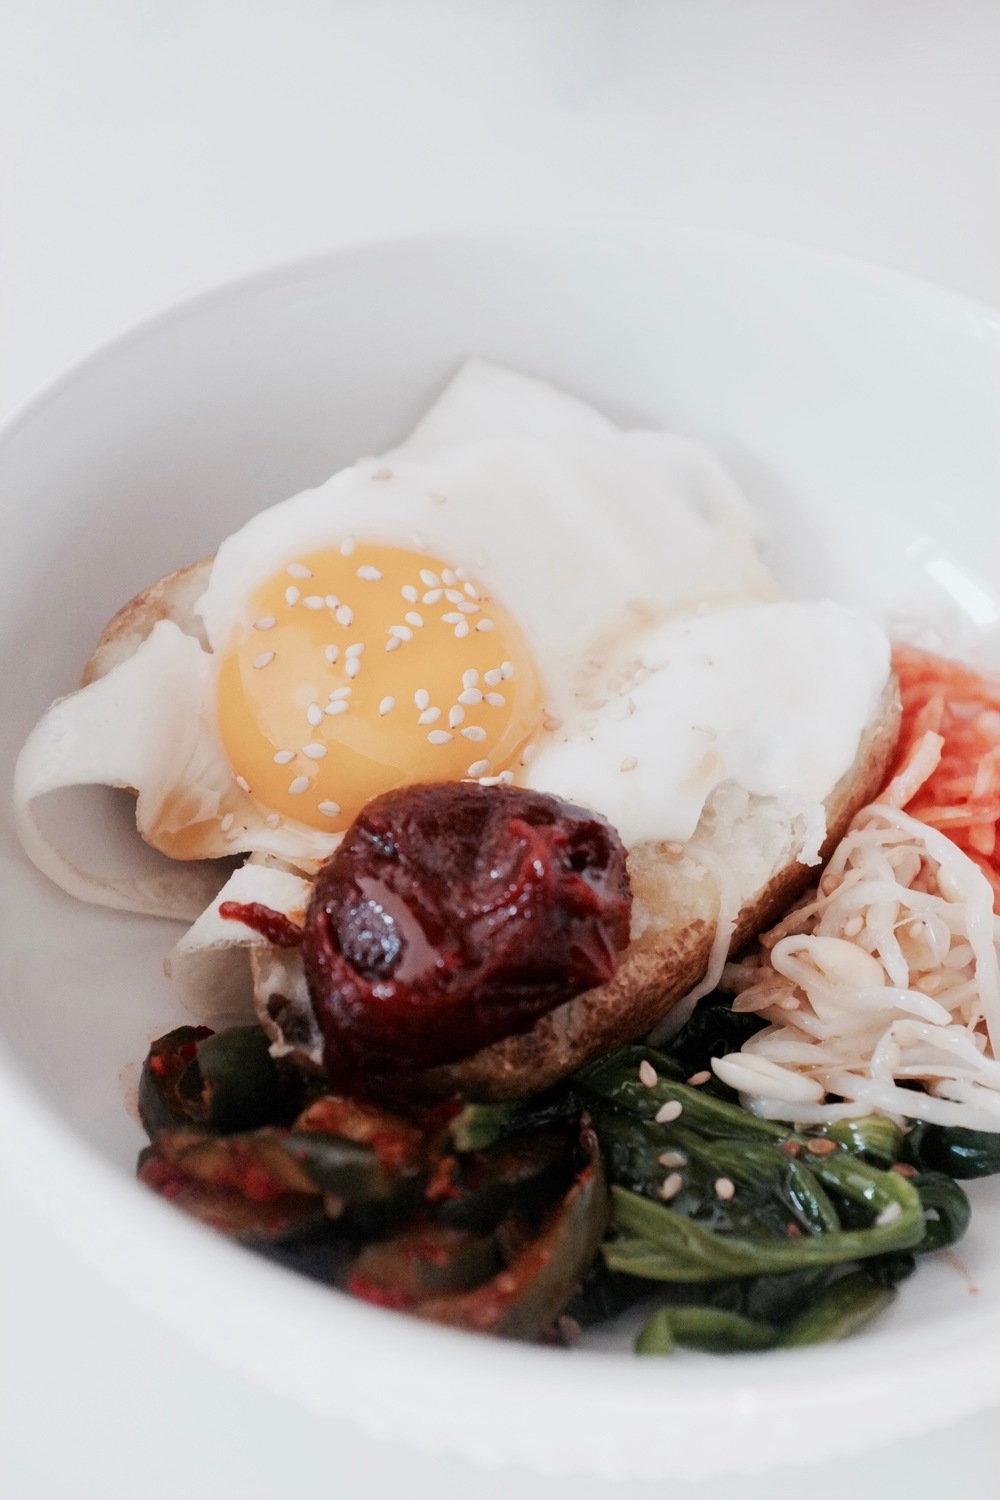 Baked Potato Bibimbap - Hill Reeves